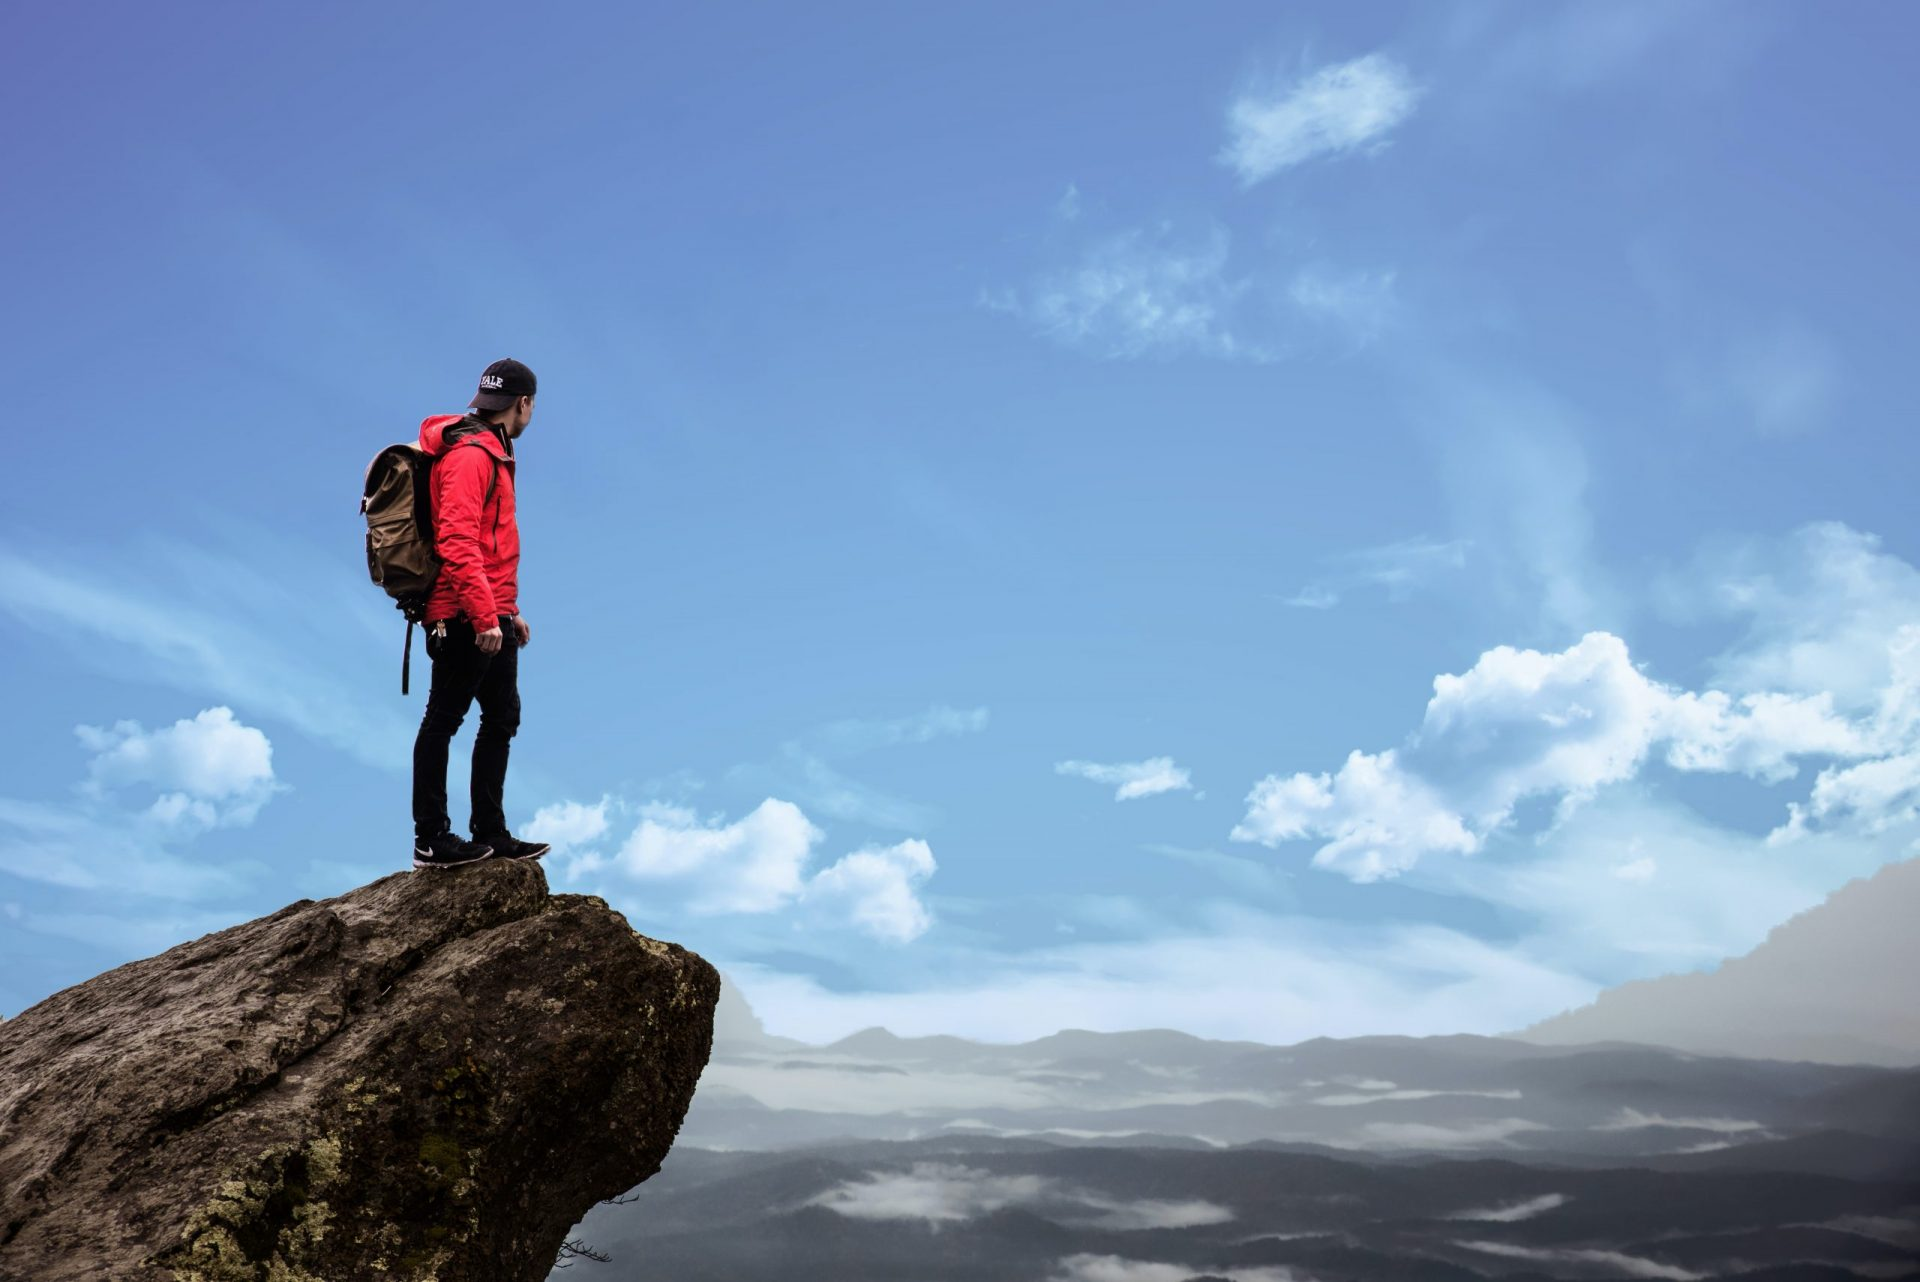 Mountain hiker in red jacket stands by the edge of a cliff | luxury homes by brittany corporation